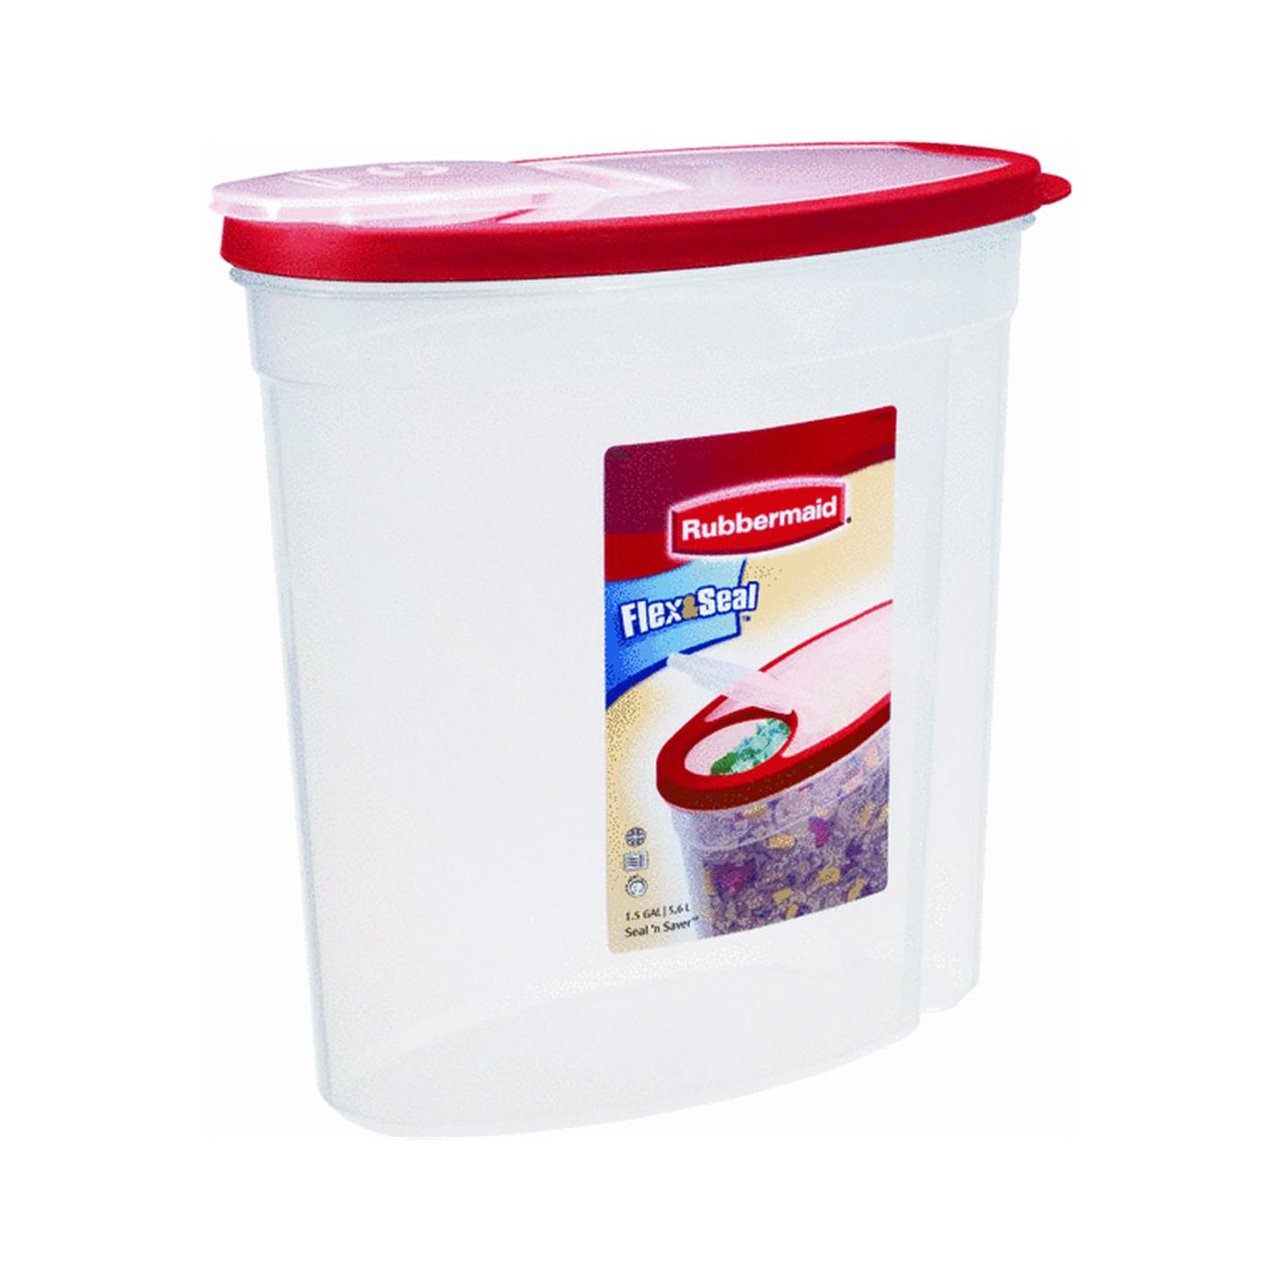 Rubbermaid Home Cereal Keeper Clear/ Red (1.5 Gal) - 1783748